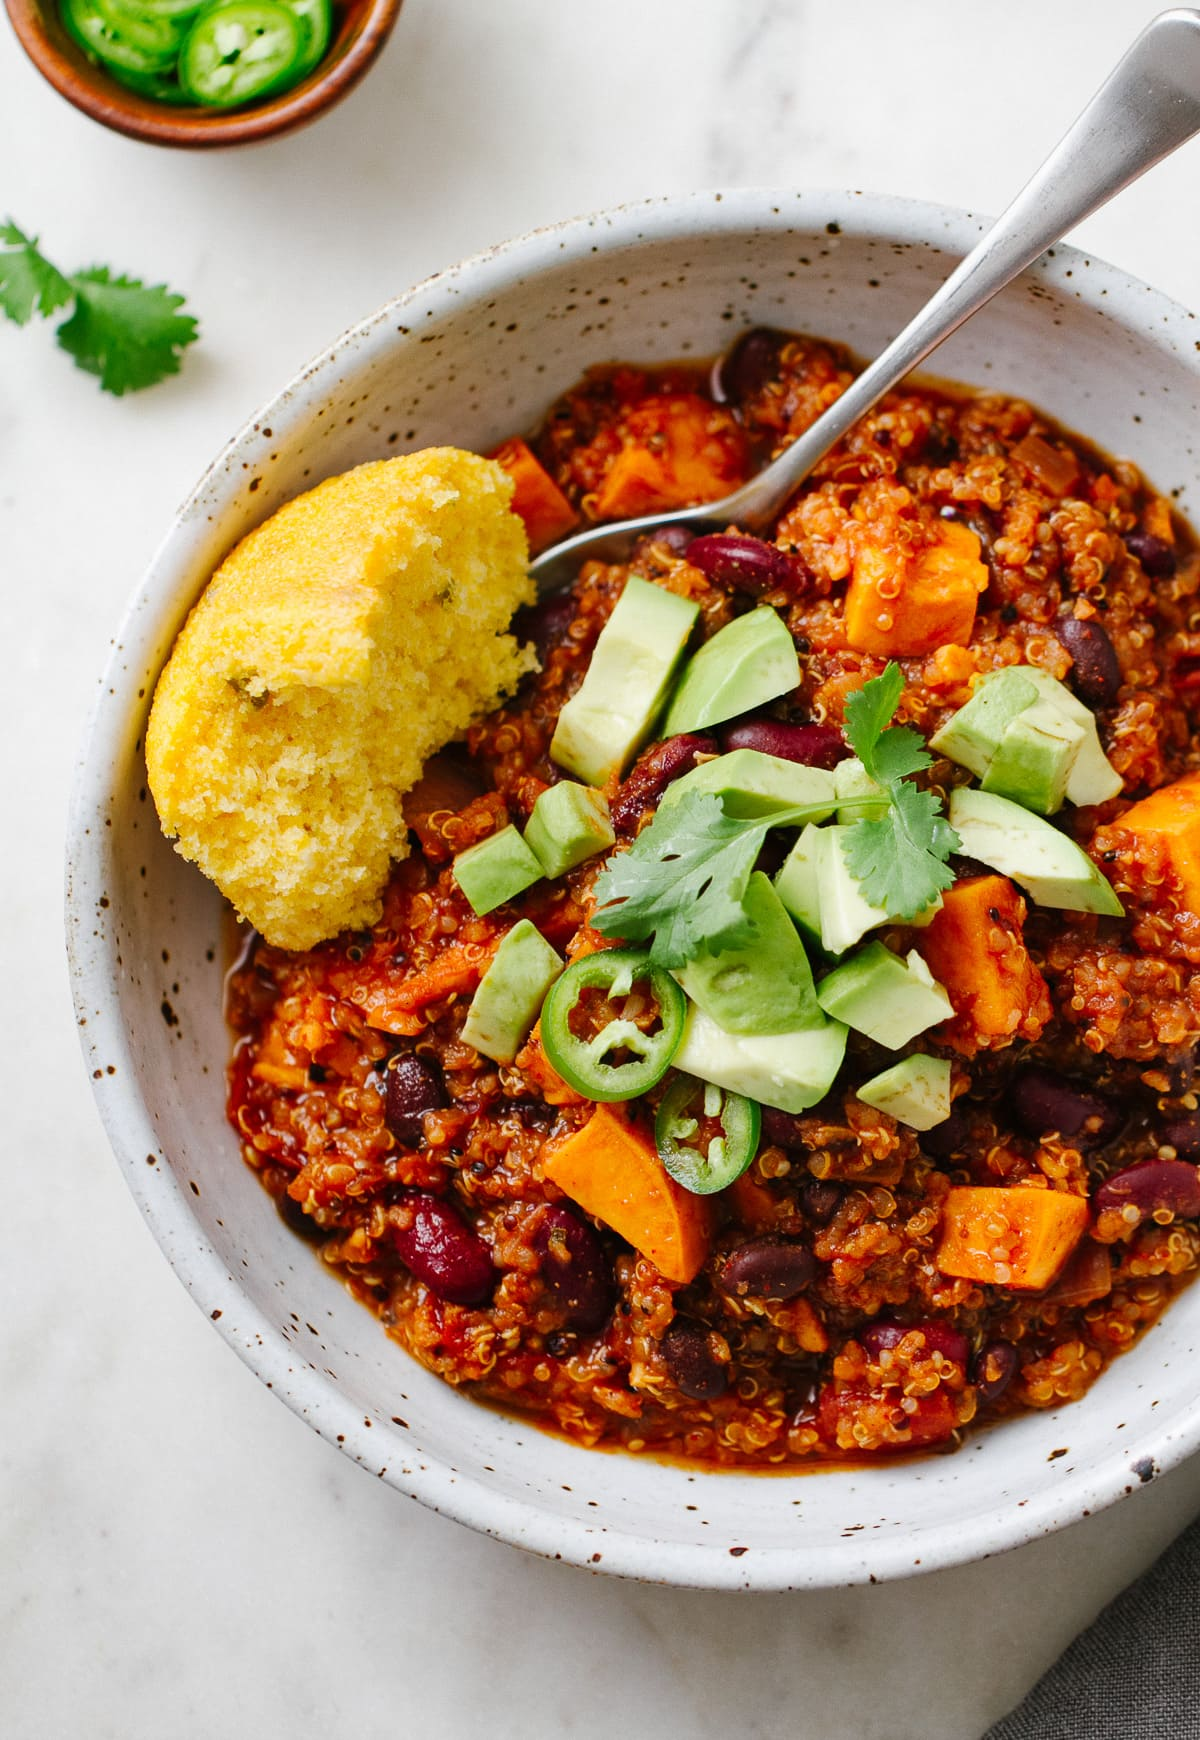 top down view of a bowl with serving of vegan sweet potato quinoa chili with cornbread and spoon.